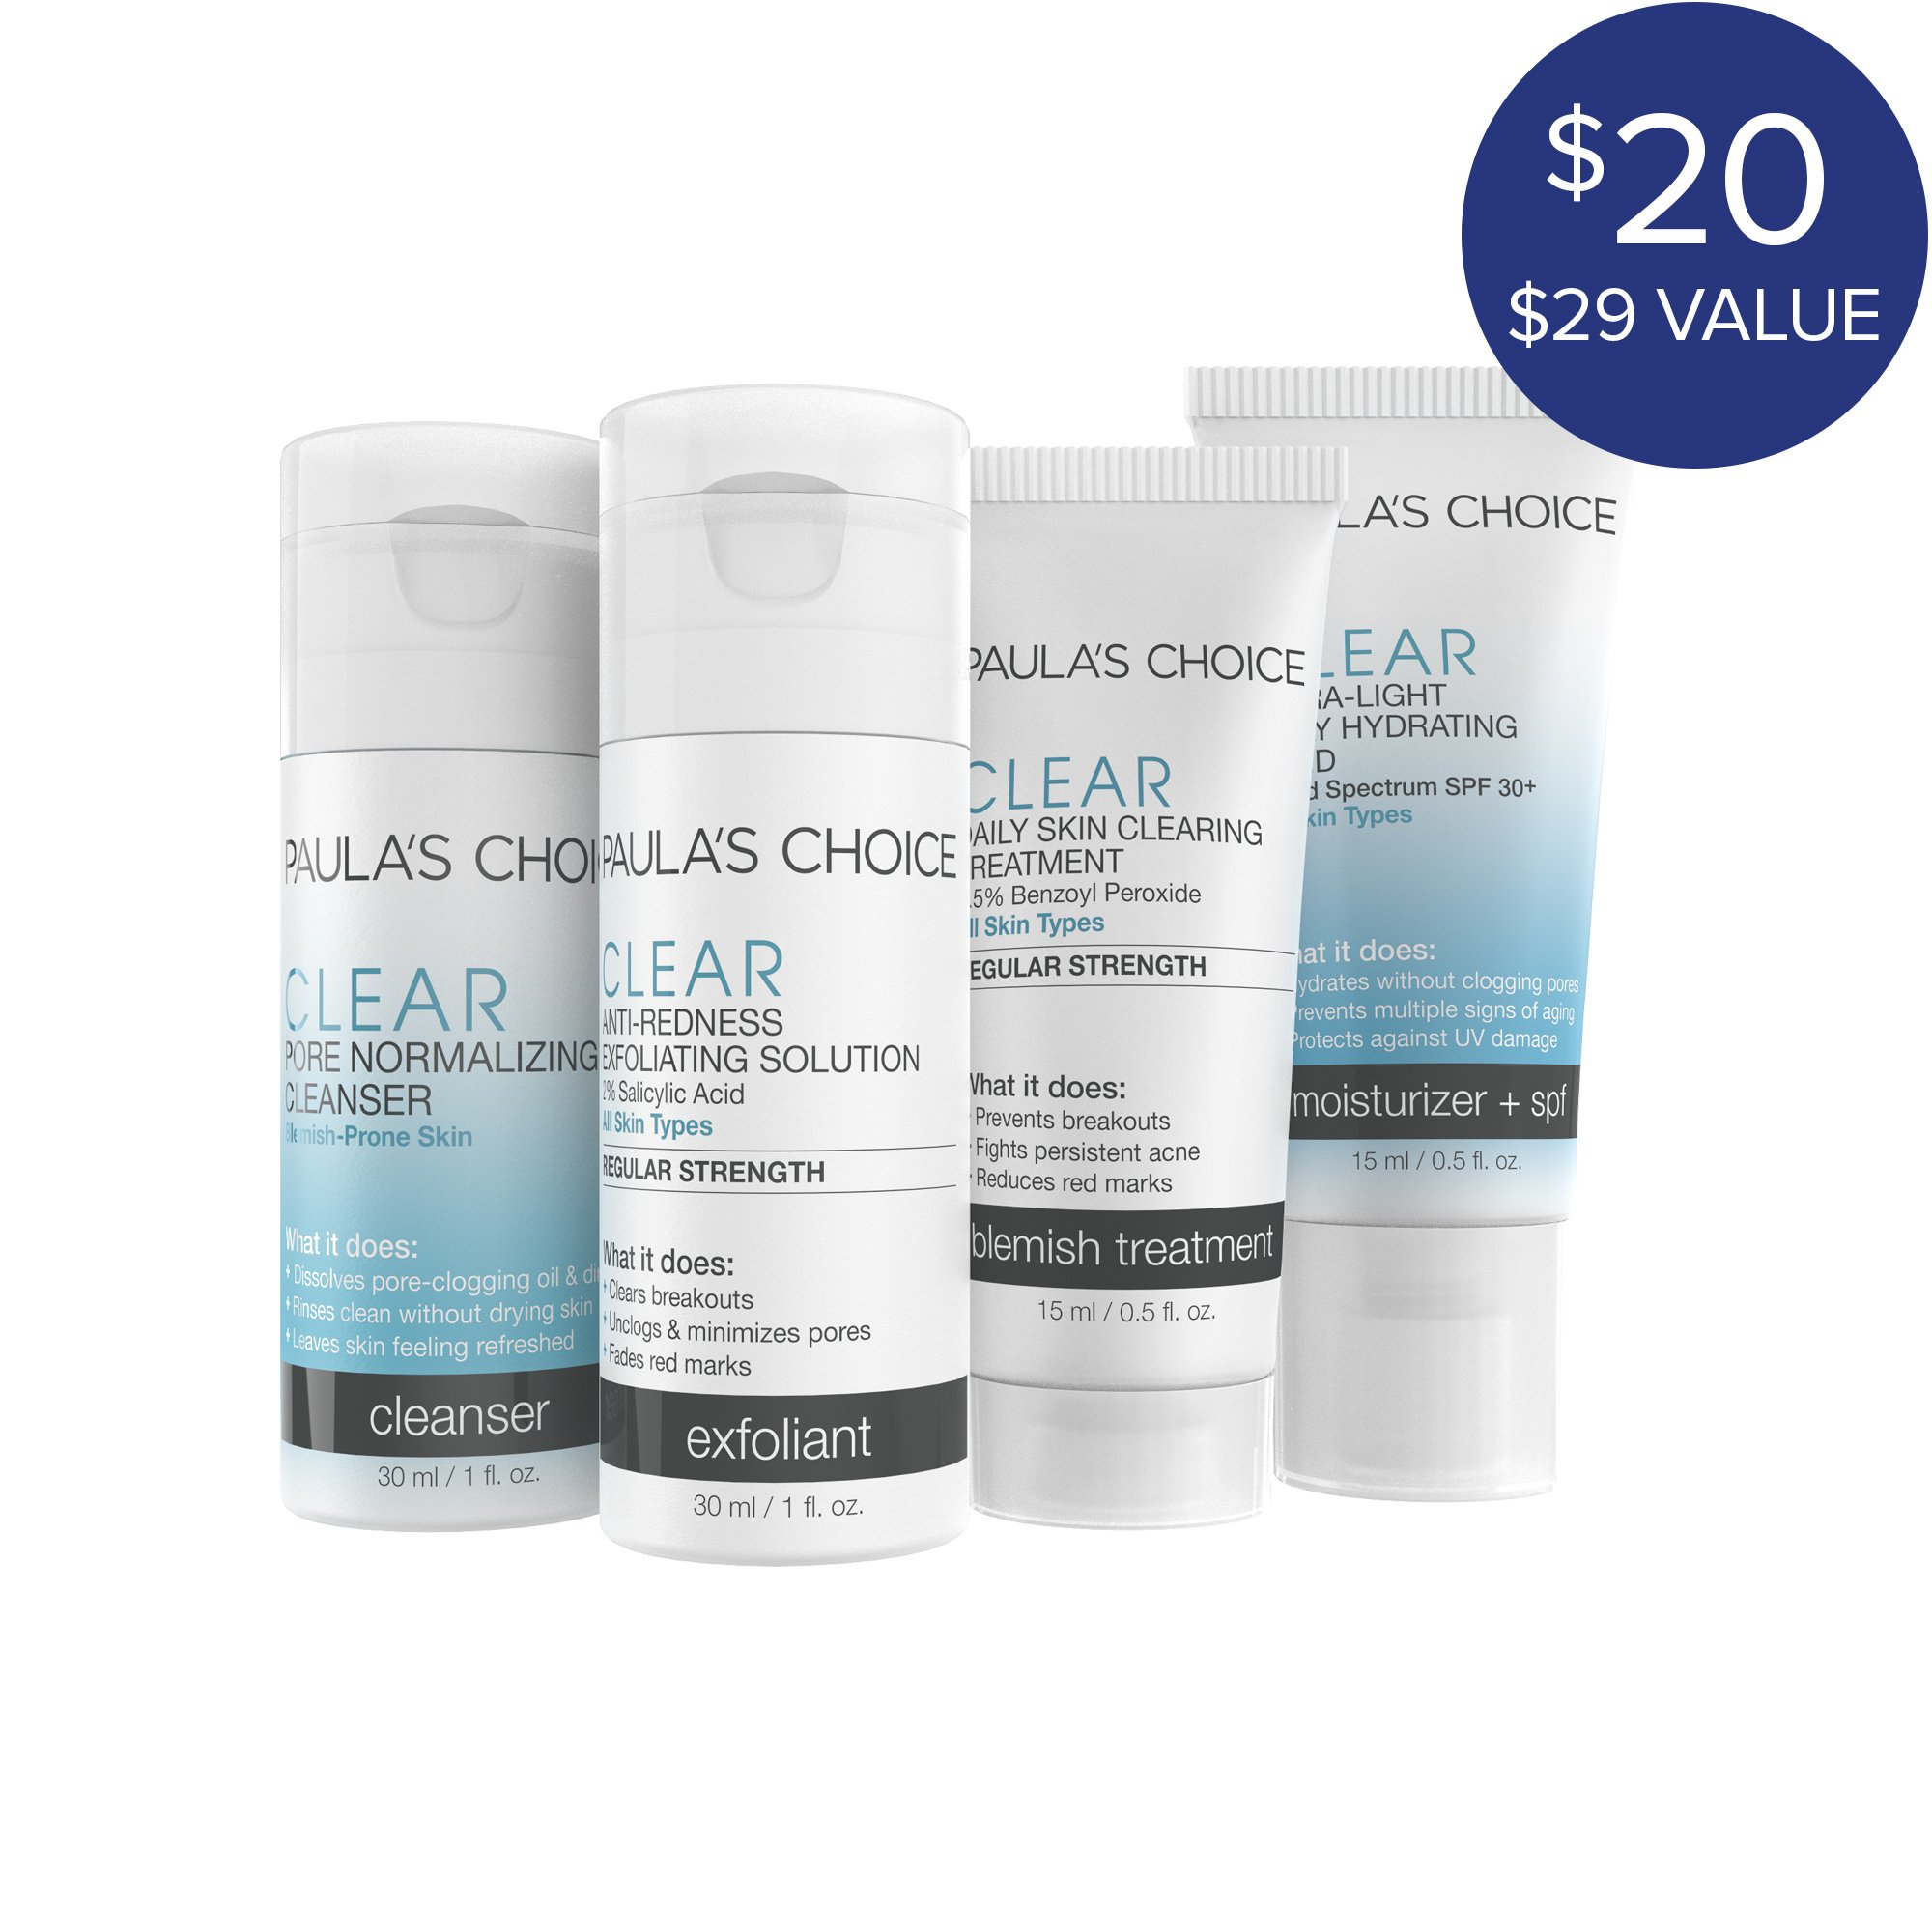 Paula's Choice-CLEAR Regular Strength Travel Kit and Ultra-Light Daily Fluid SPF 30+ Anti-Aging Moisturizer Travel-Size Blemish-Fighting Skin Care Products Plus Face Moisturizer with Sunscreen